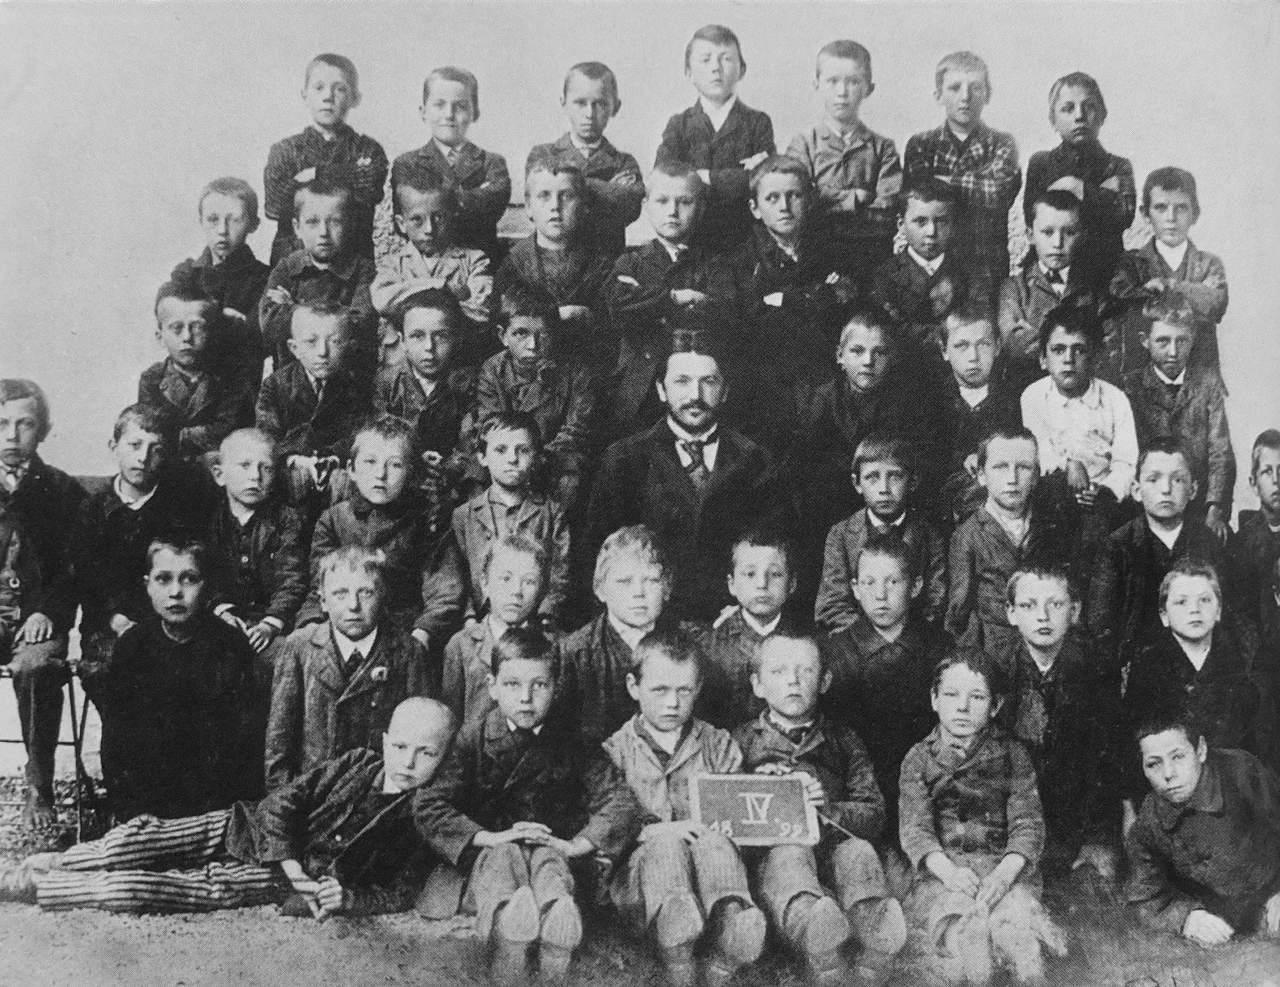 Adolf Hitler at the age of 10 (middle of the top row) with his classmates in Leonding